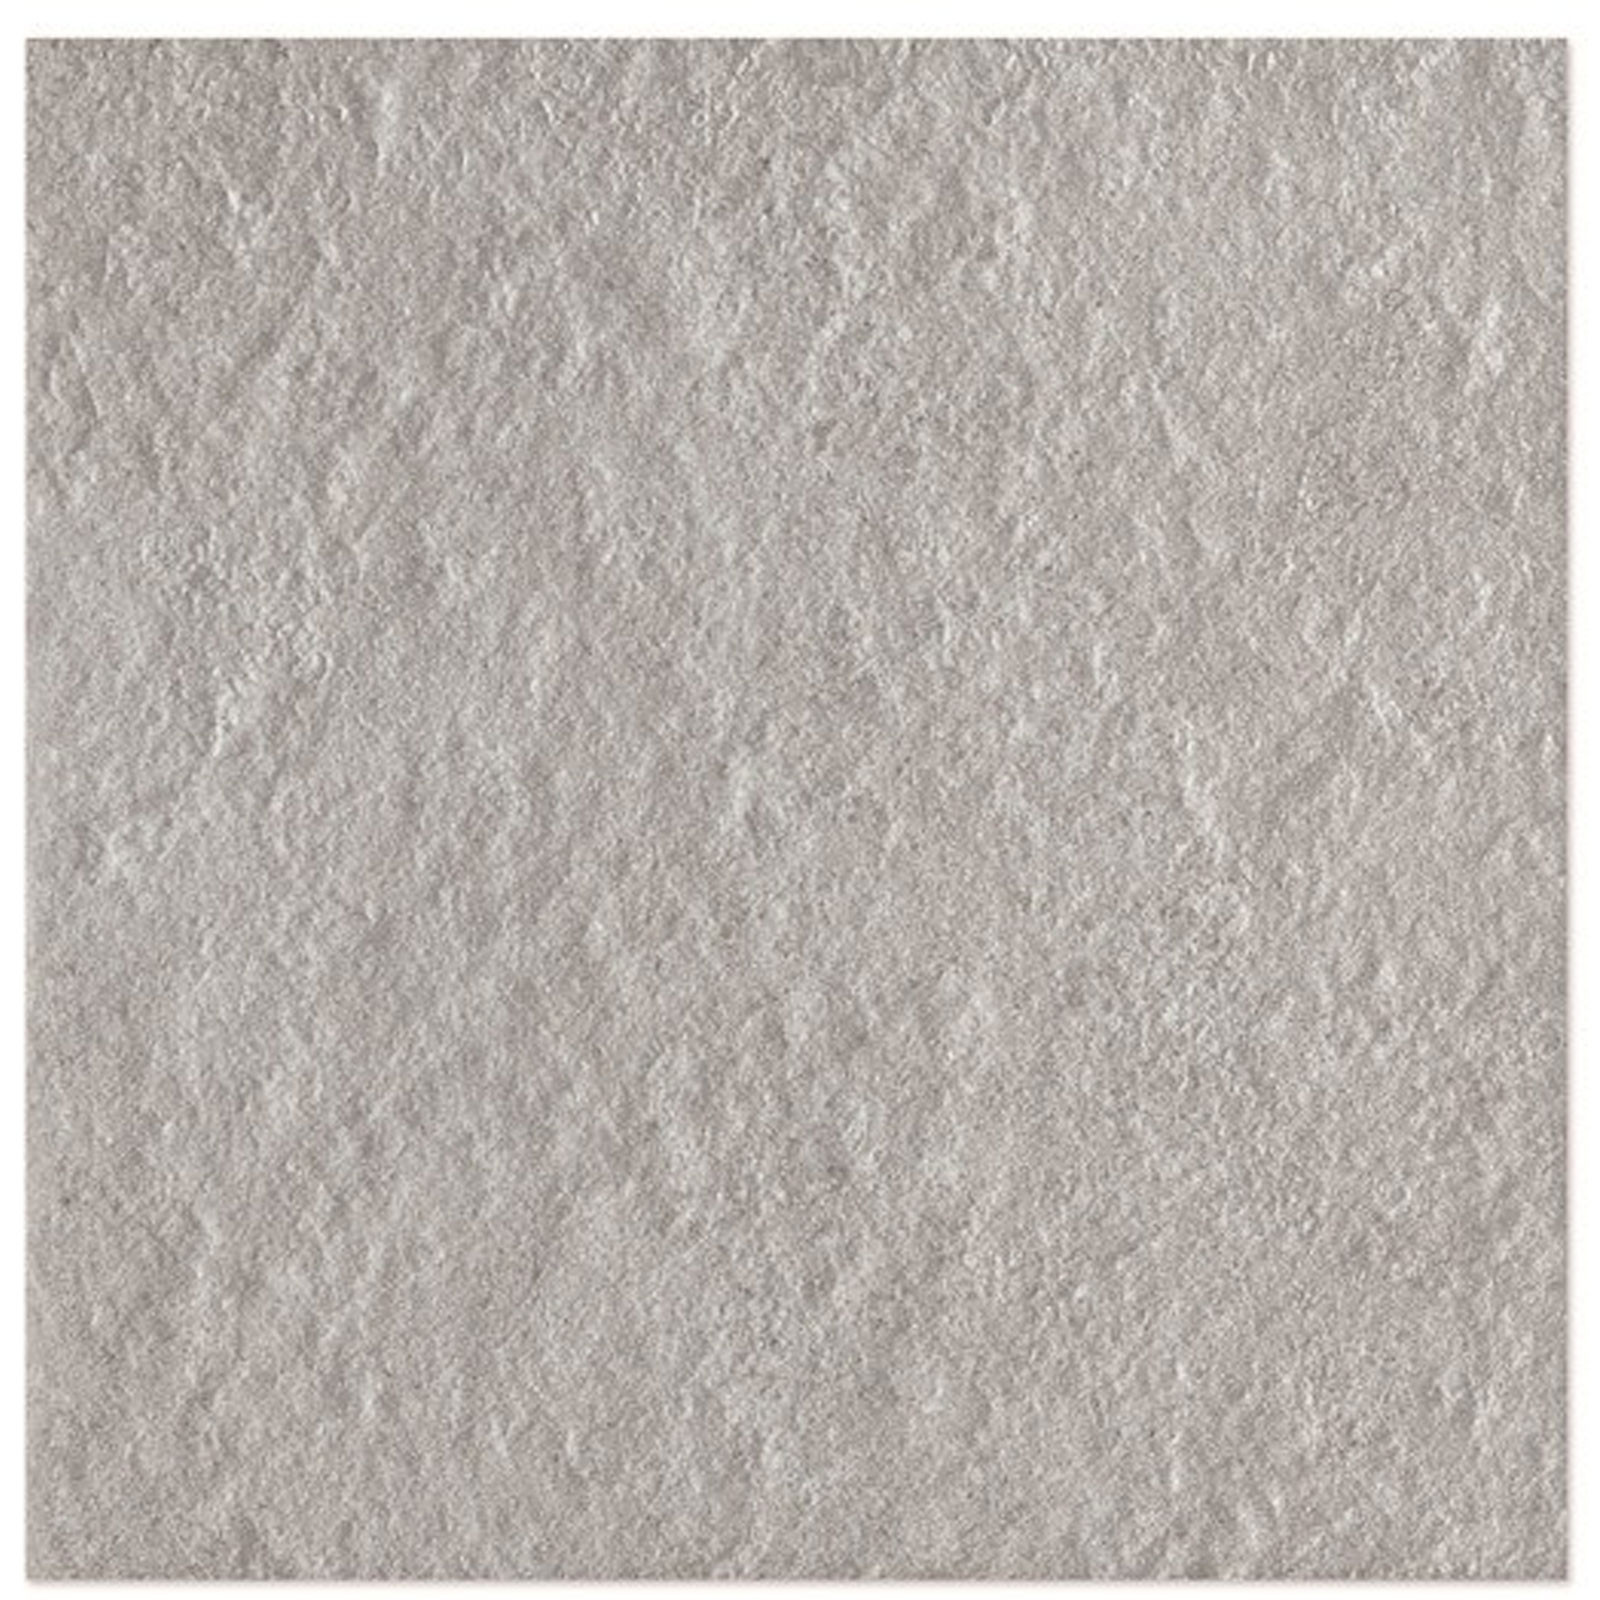 Season grey glazed porcelain non slip floor tile for Porcelain tile bathroom floor slippery